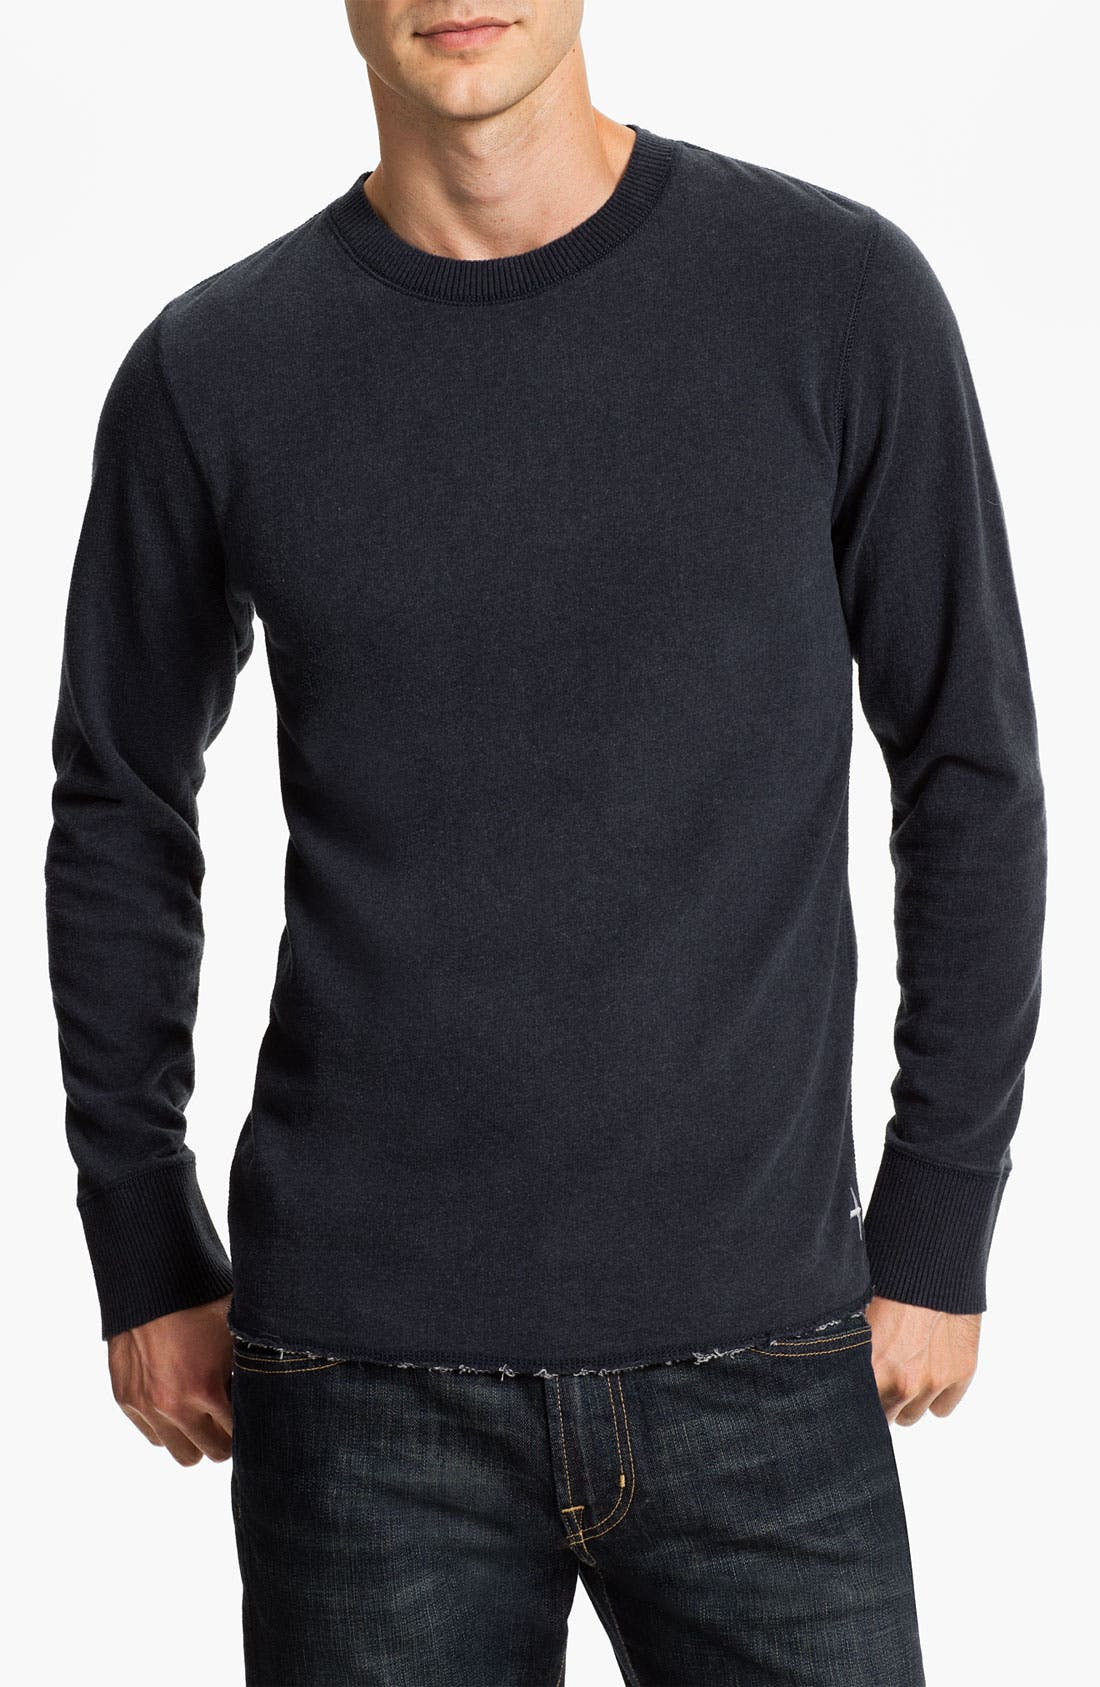 Main Image - Relwen Crewneck Thermal Sweatshirt